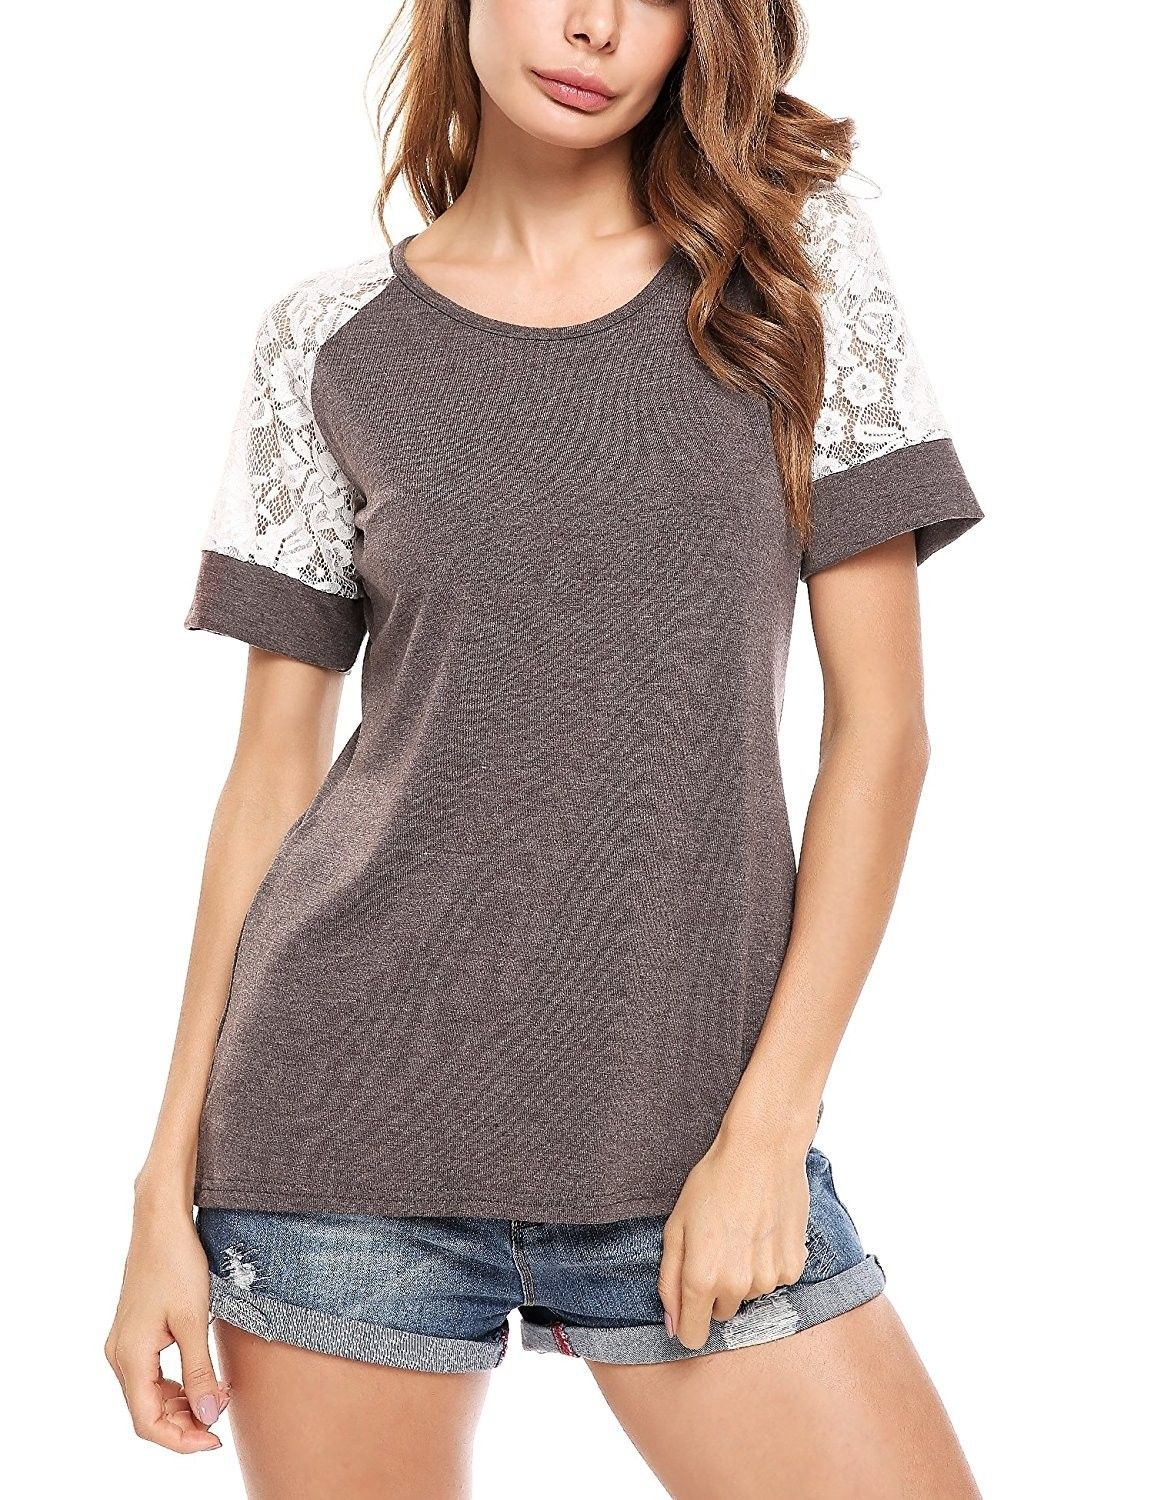 354562fd Women's Clothing, Tops & Tees, Tunics,Women's Lace Short Sleeve Raglan T-